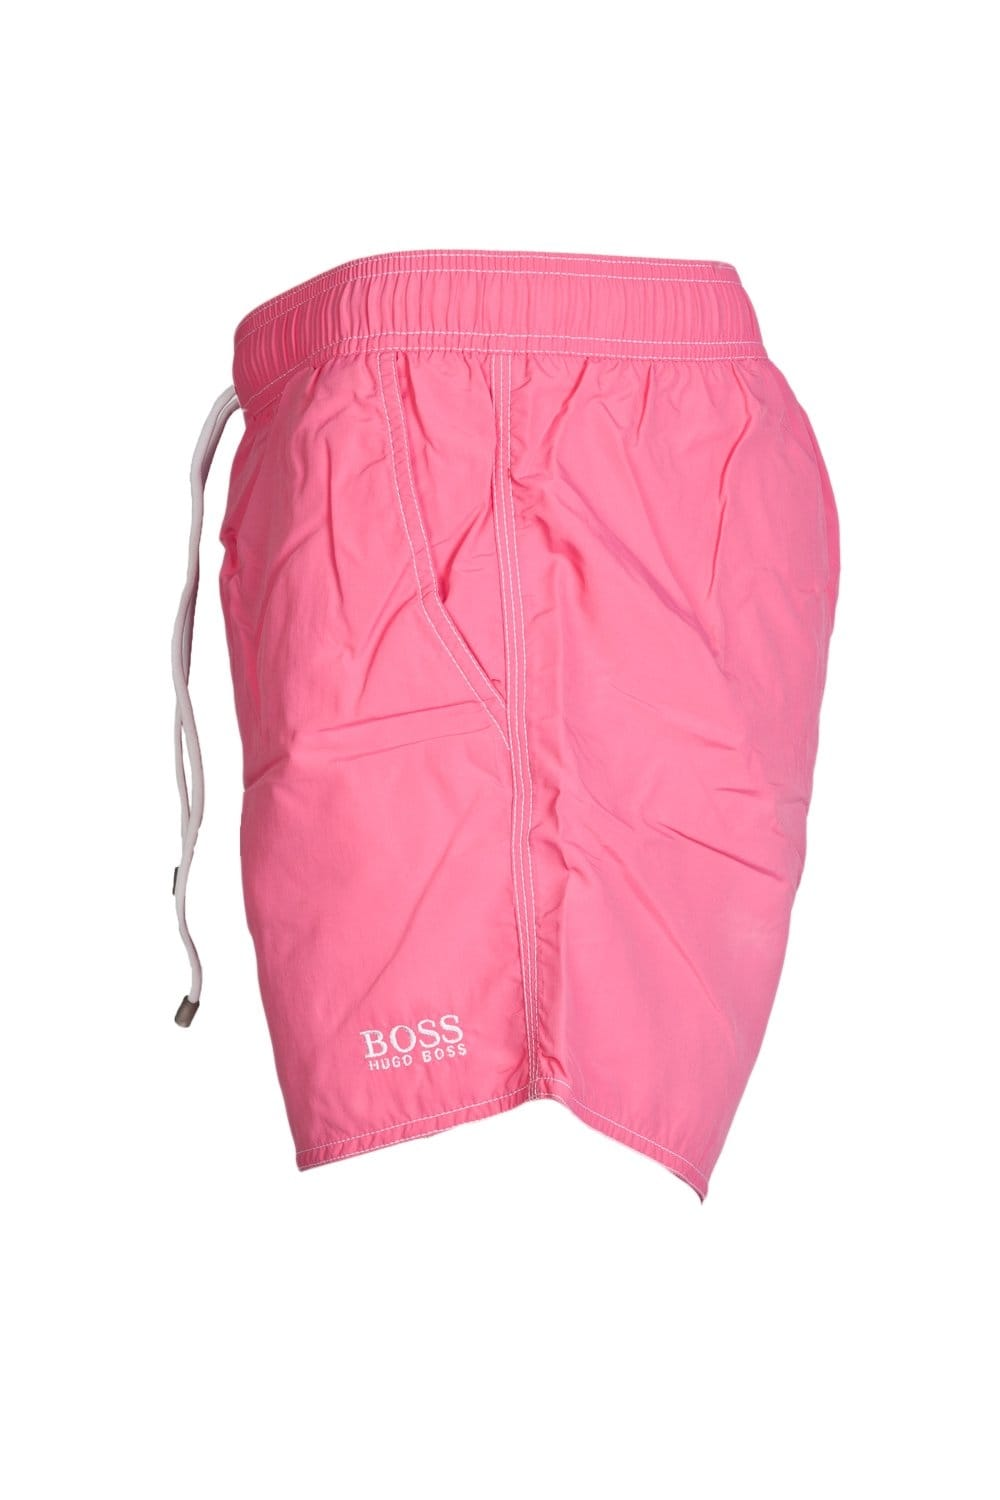 2e82ee32e HUGO BOSS BLACK Quick-dry Swimming Shorts in Yellow Orange and range of  colours LOBSTER